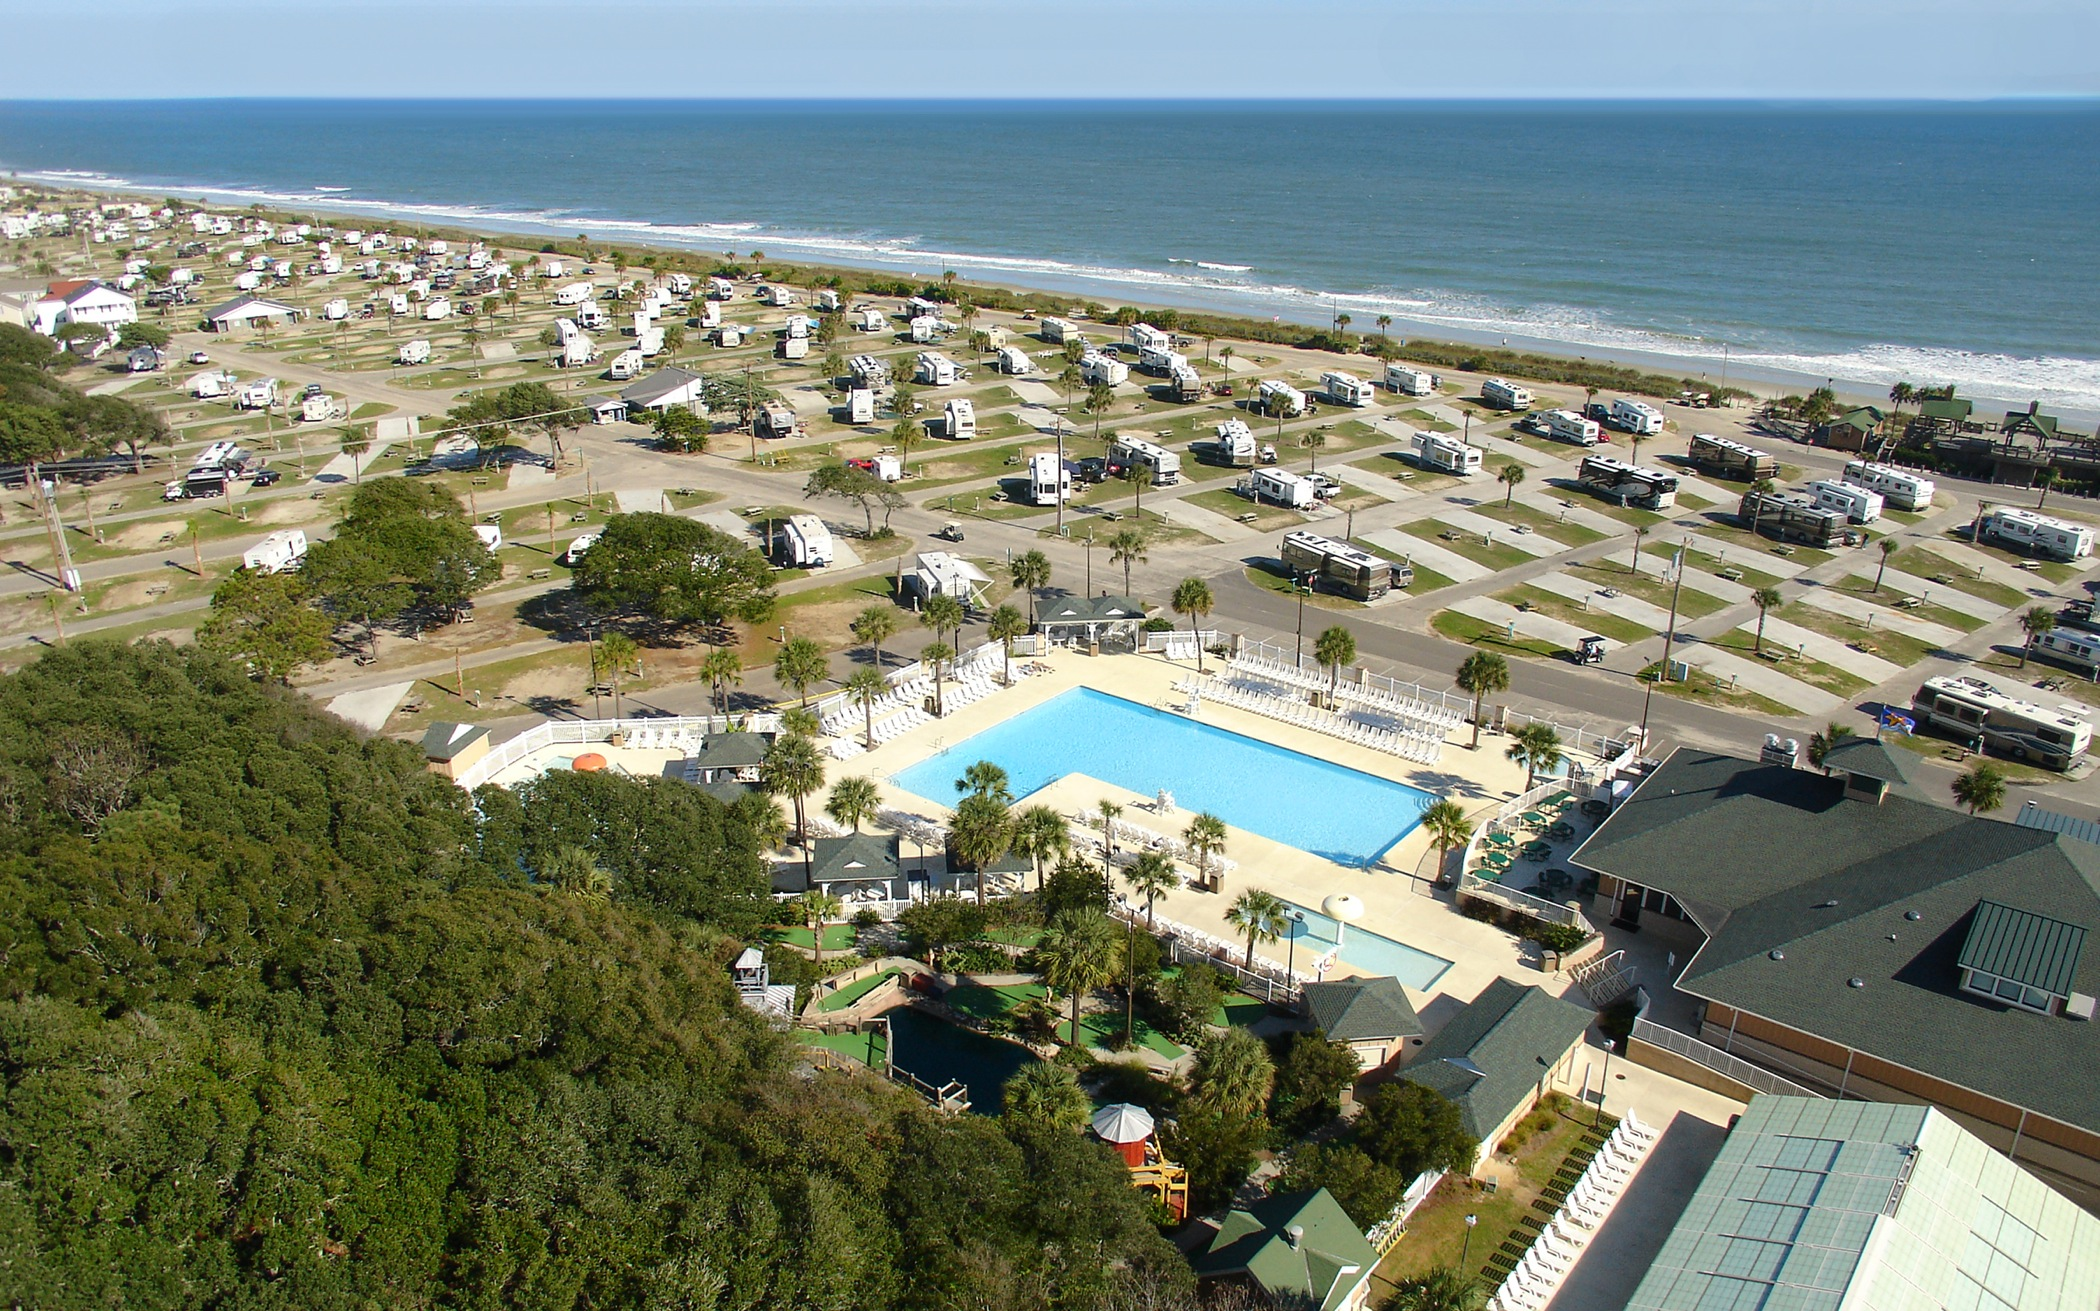 Ocean Lakes Family Campground Brings Top Bluegr Music To Myrtle Beach For Its 18th Annual Weekend